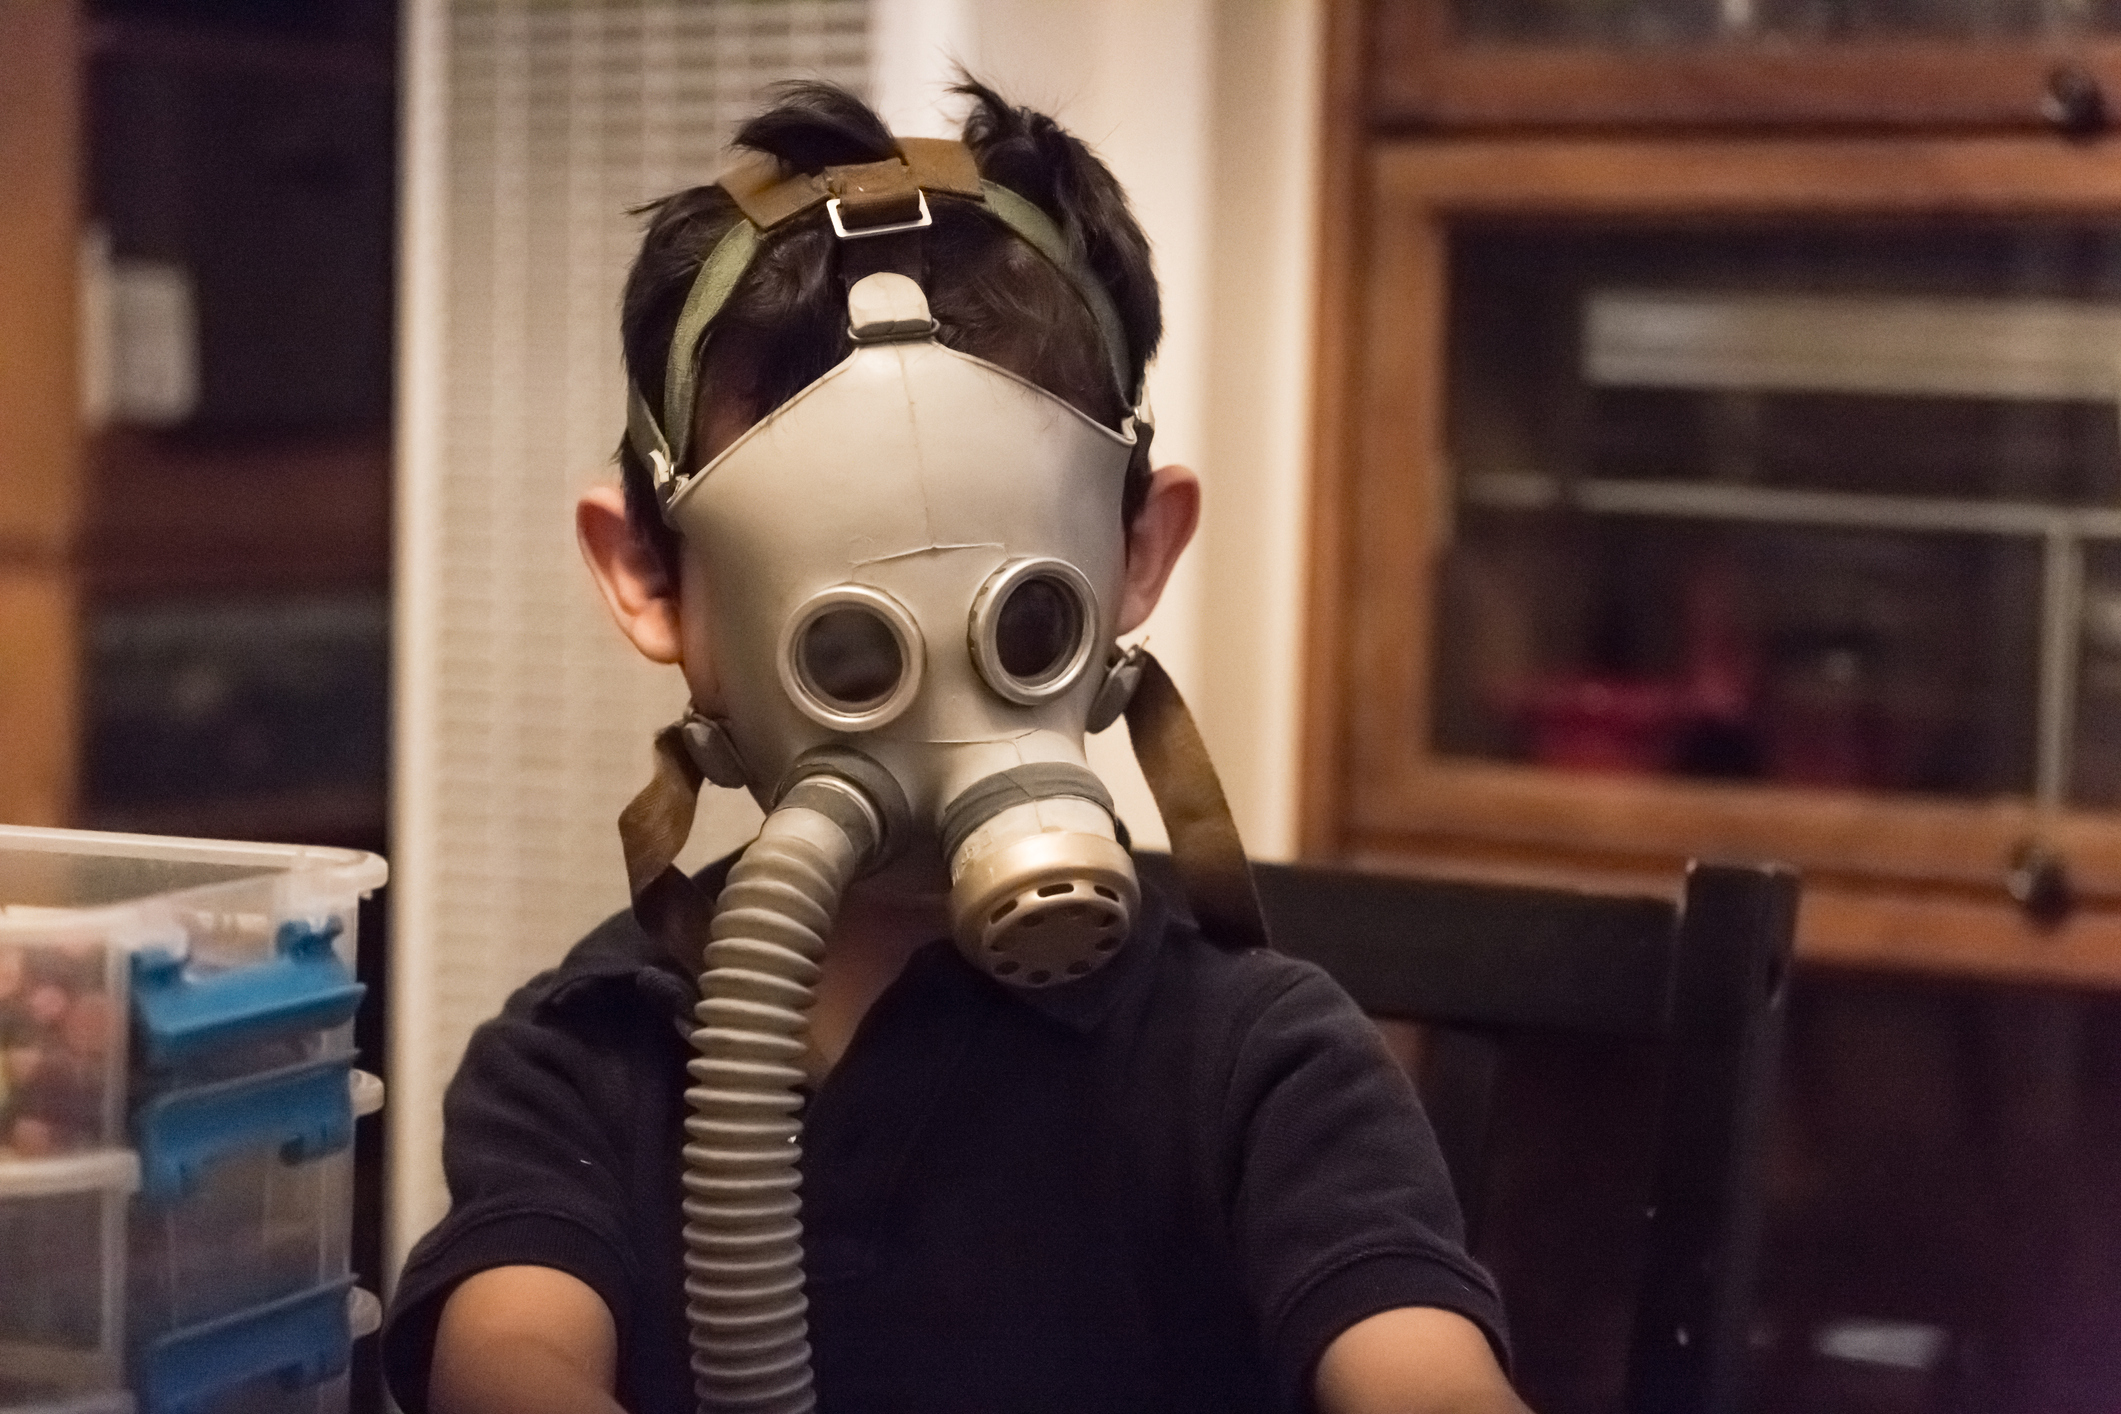 Child wearing nuclear gas mask during nuclear fallout